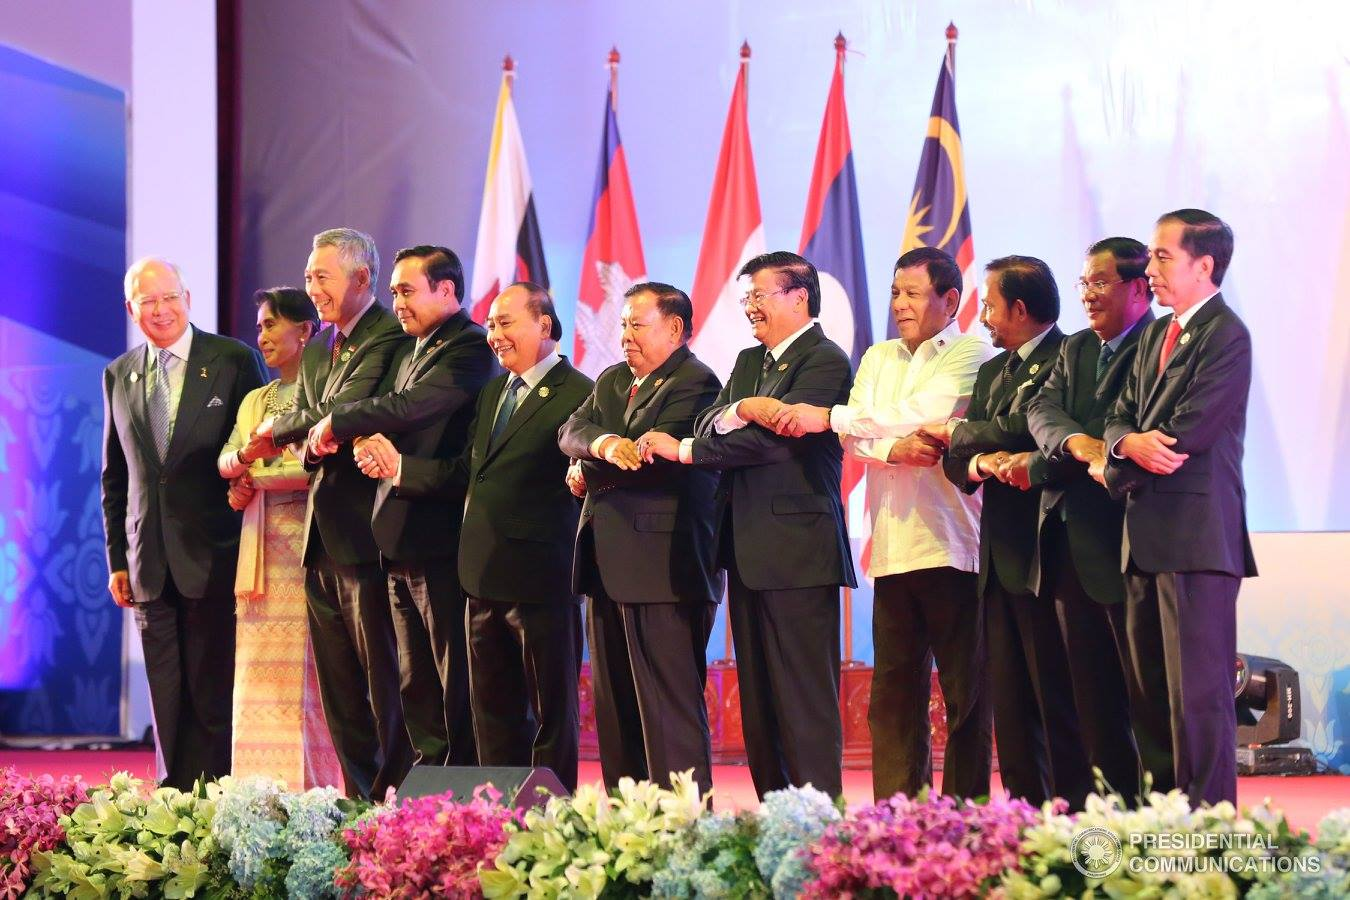 Southeast Asian leaders at the 28th ASEAN Summit in Vientiane, Laos on September 6, 2016. (PCO photo)